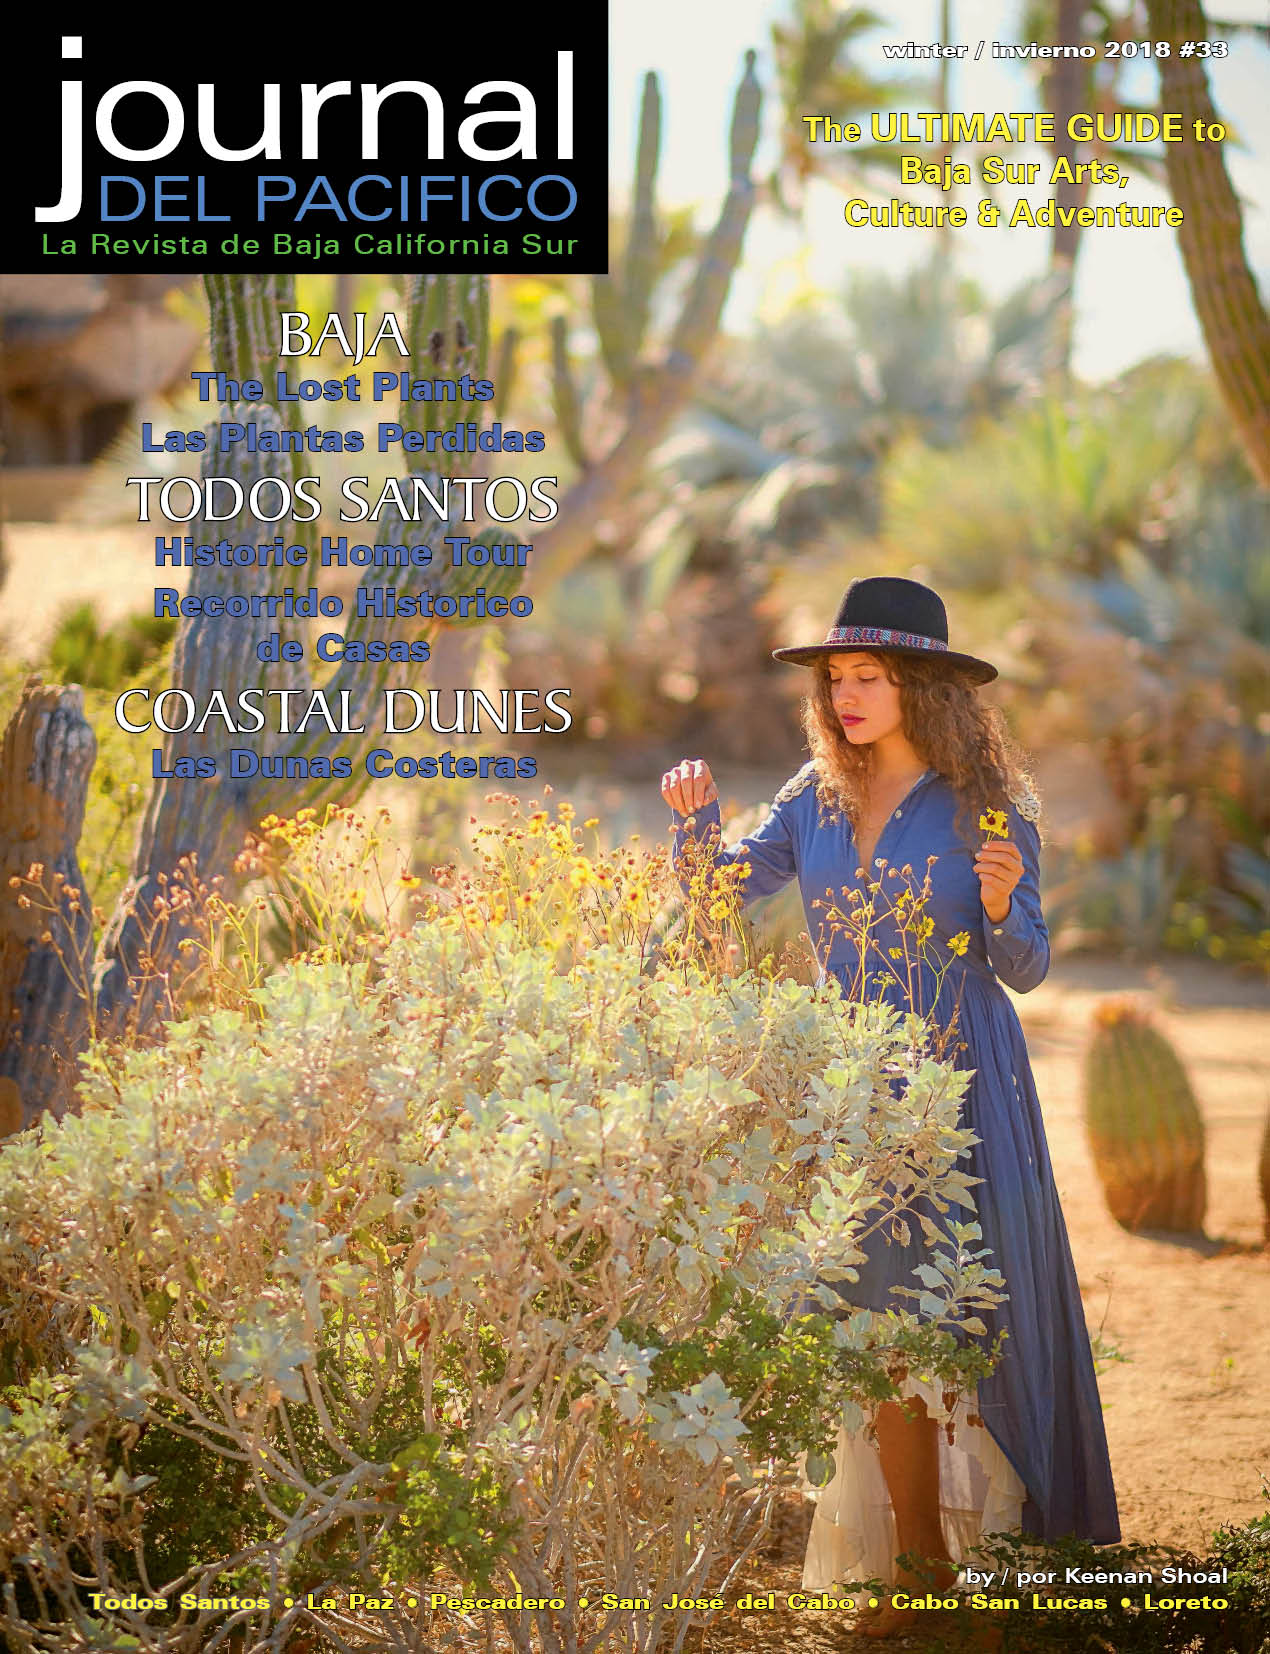 Winter/Invierno 2018 Issue of Journal del Pacifico